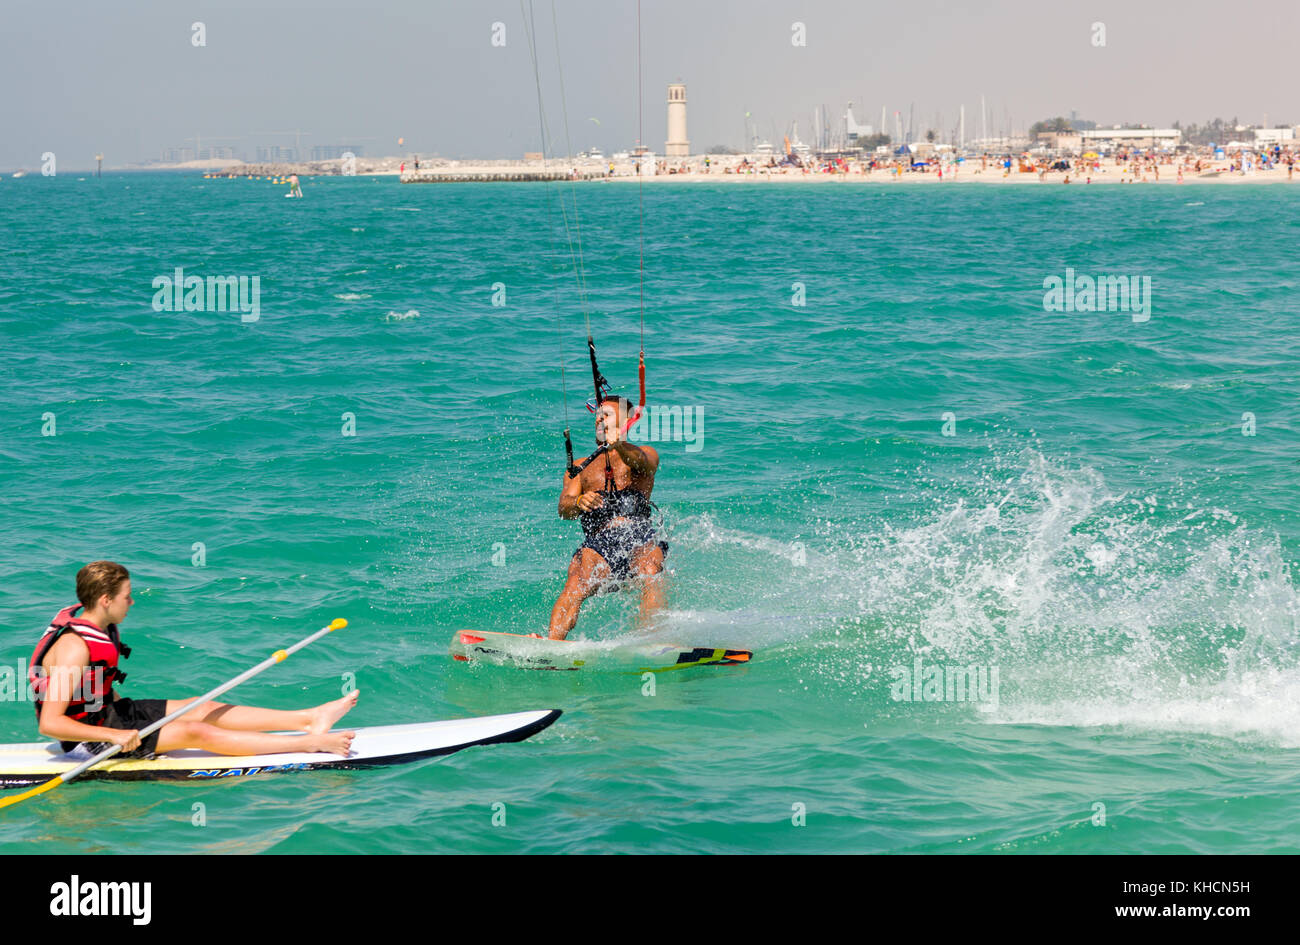 Kite surfer on the Jumeirah Kite Beach - Stock Image